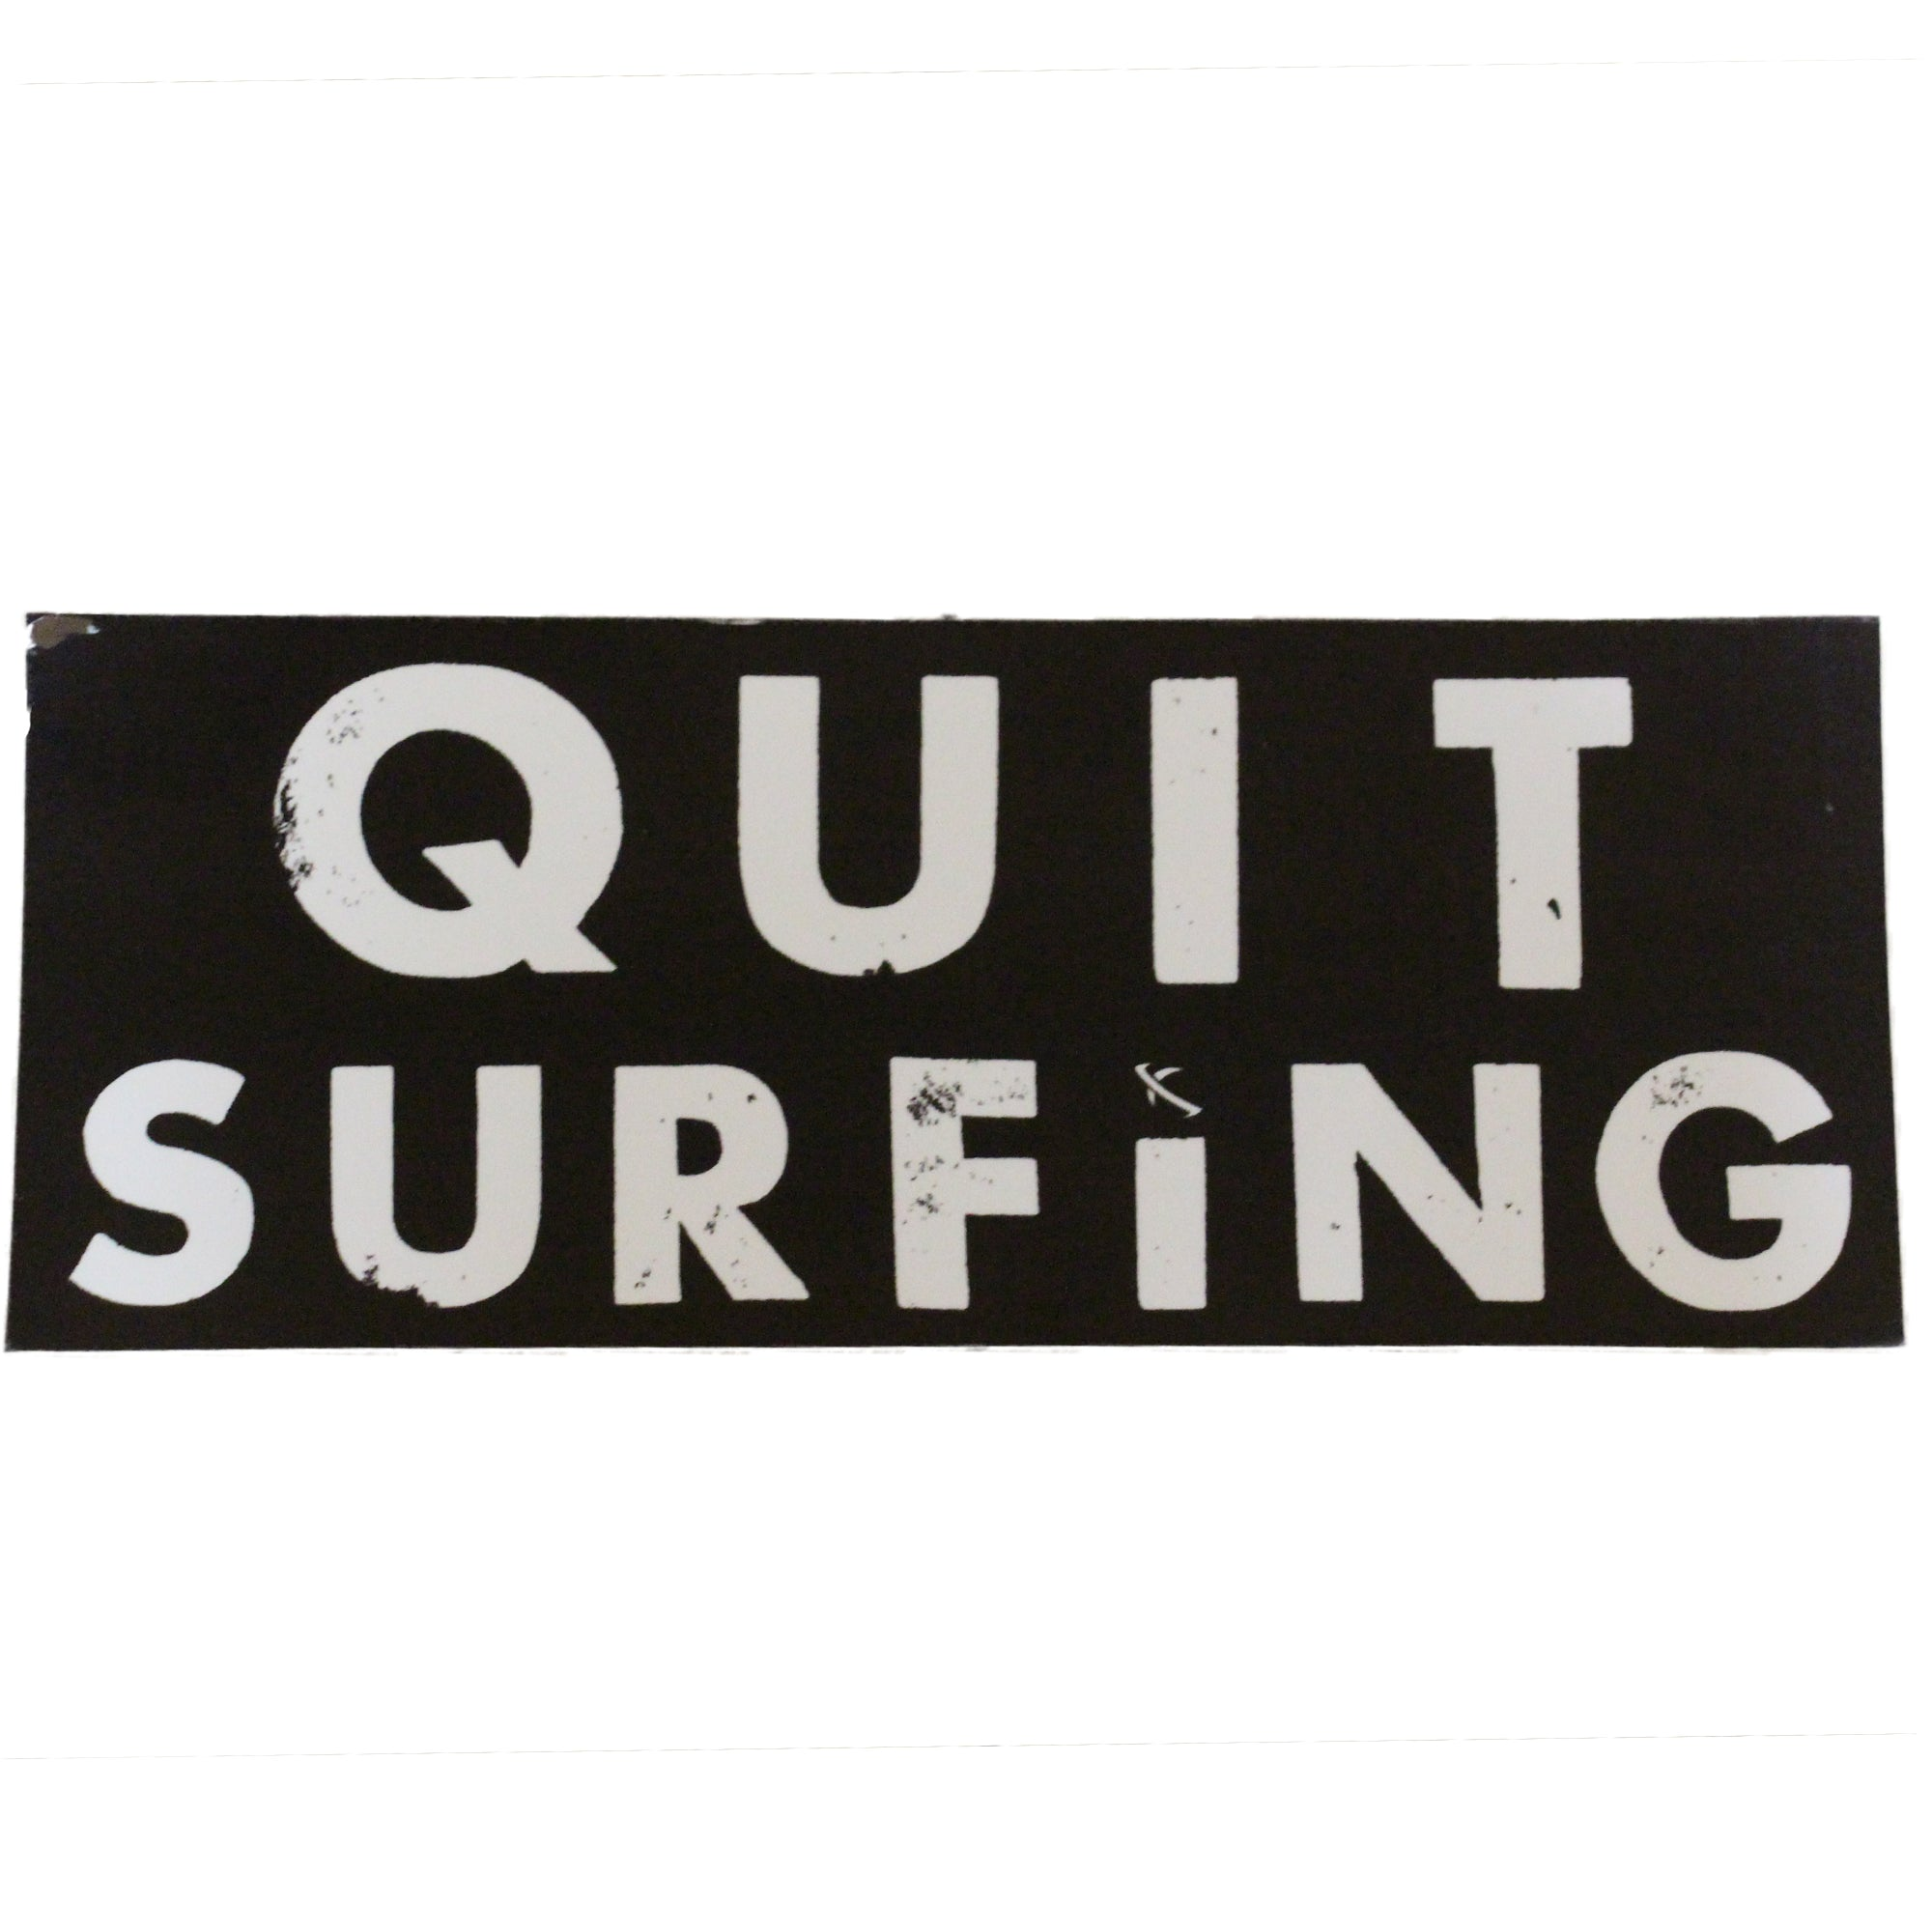 Lost Quit Surfing Sticker